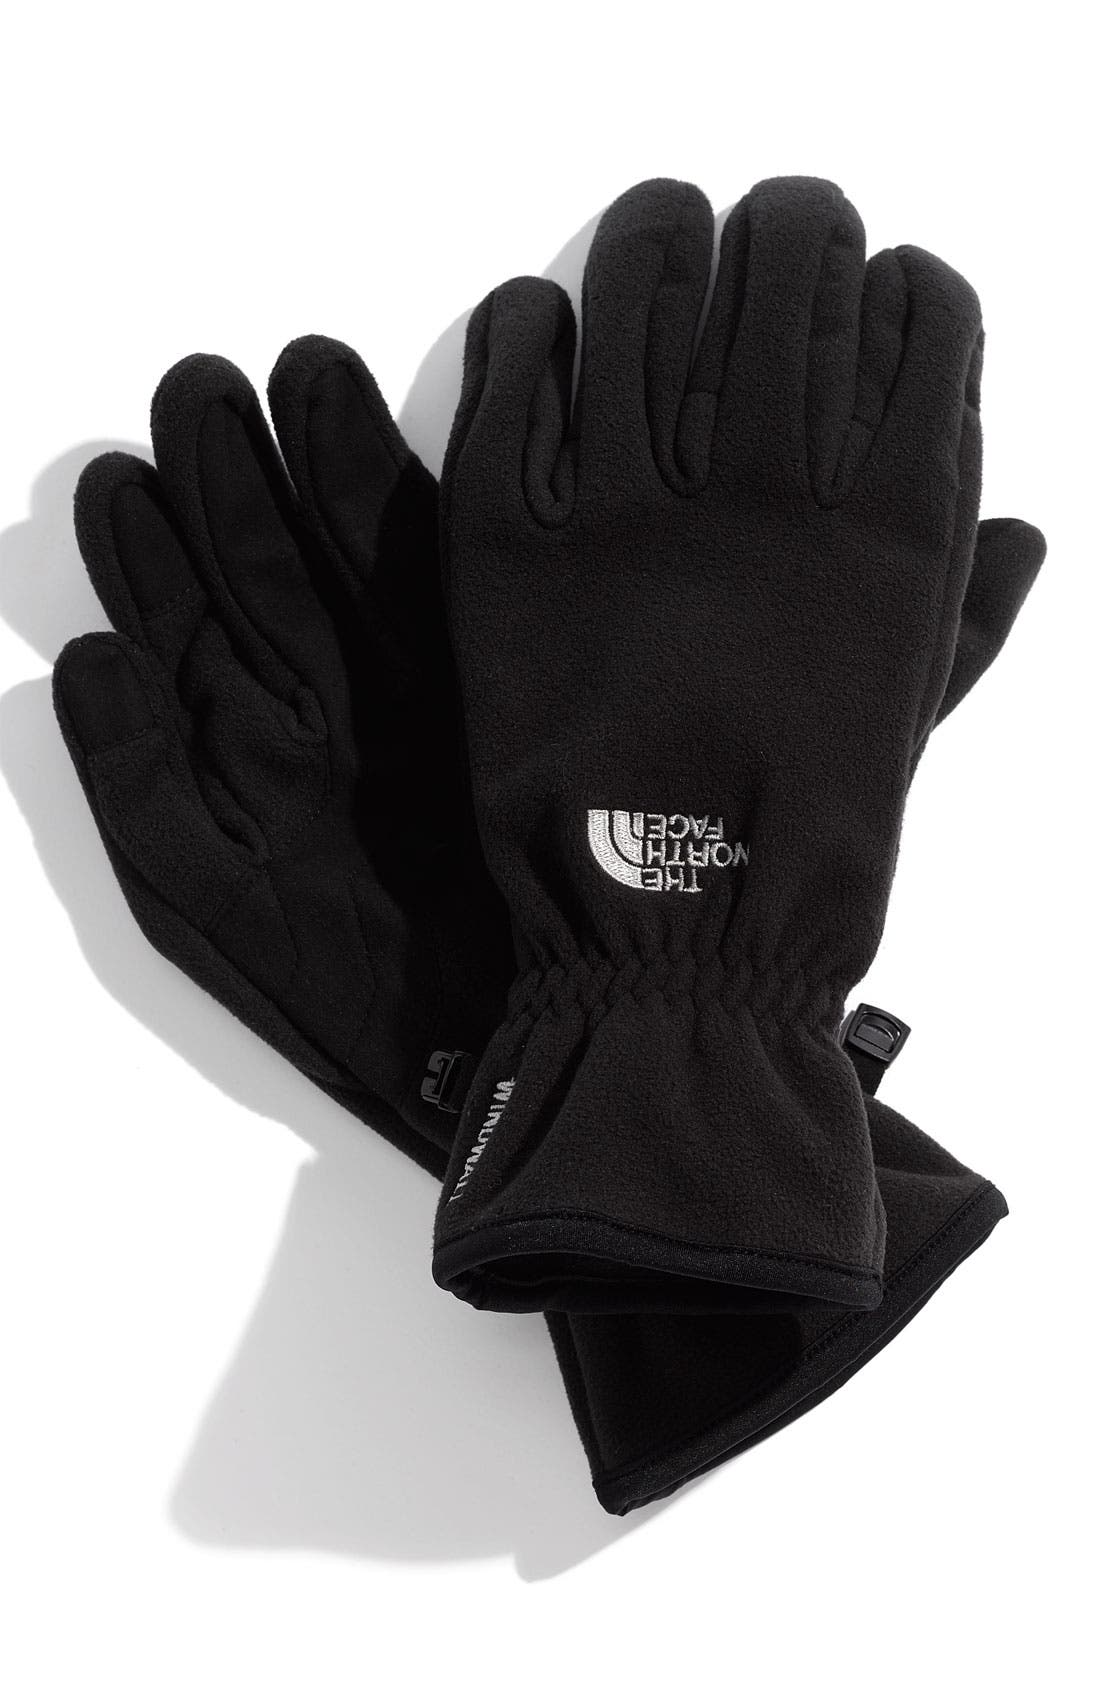 Main Image - The North Face 'Windwall' Gloves (Men)